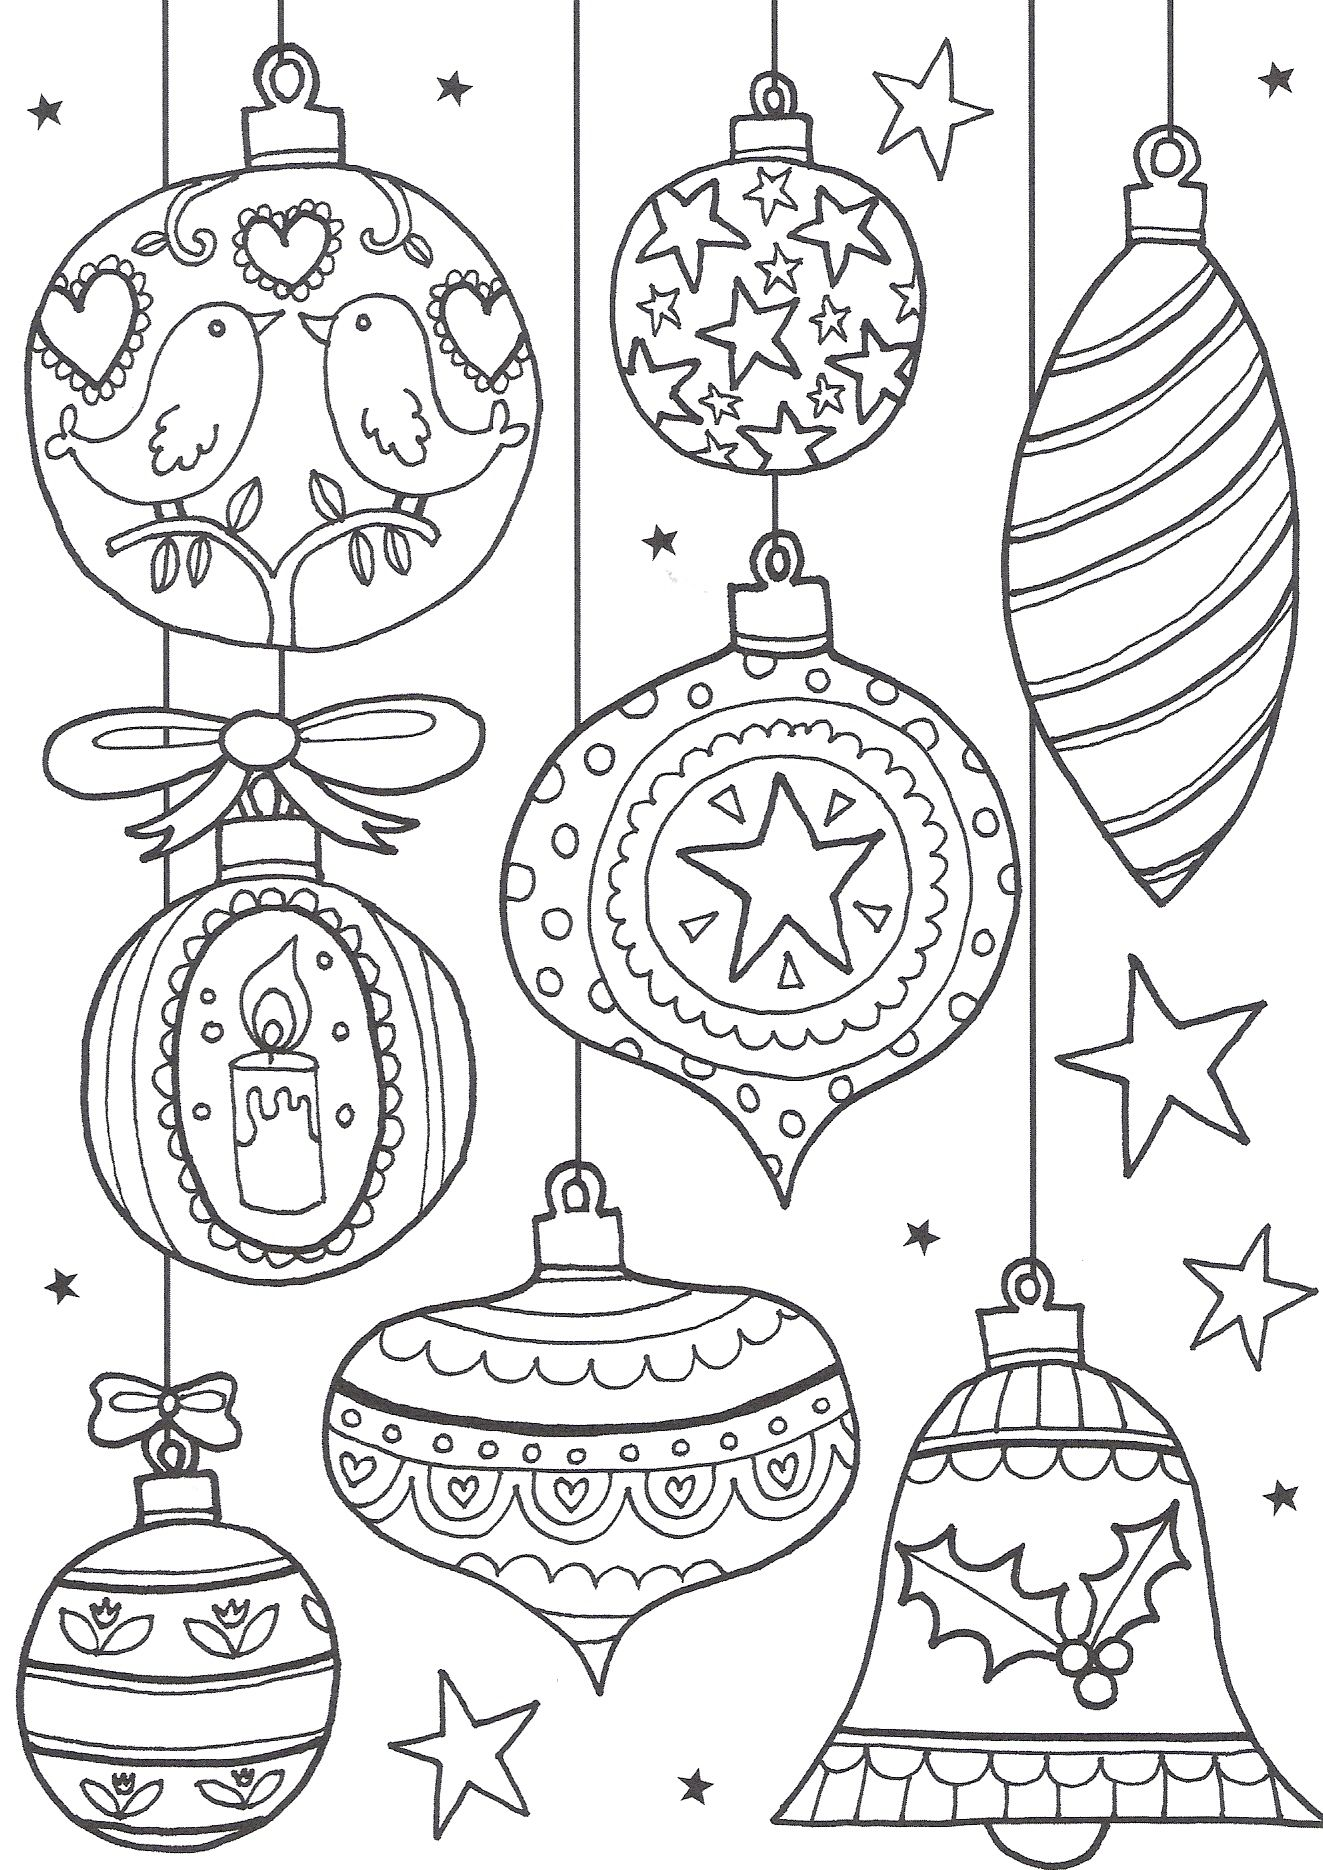 istmas coloring pages - photo#42